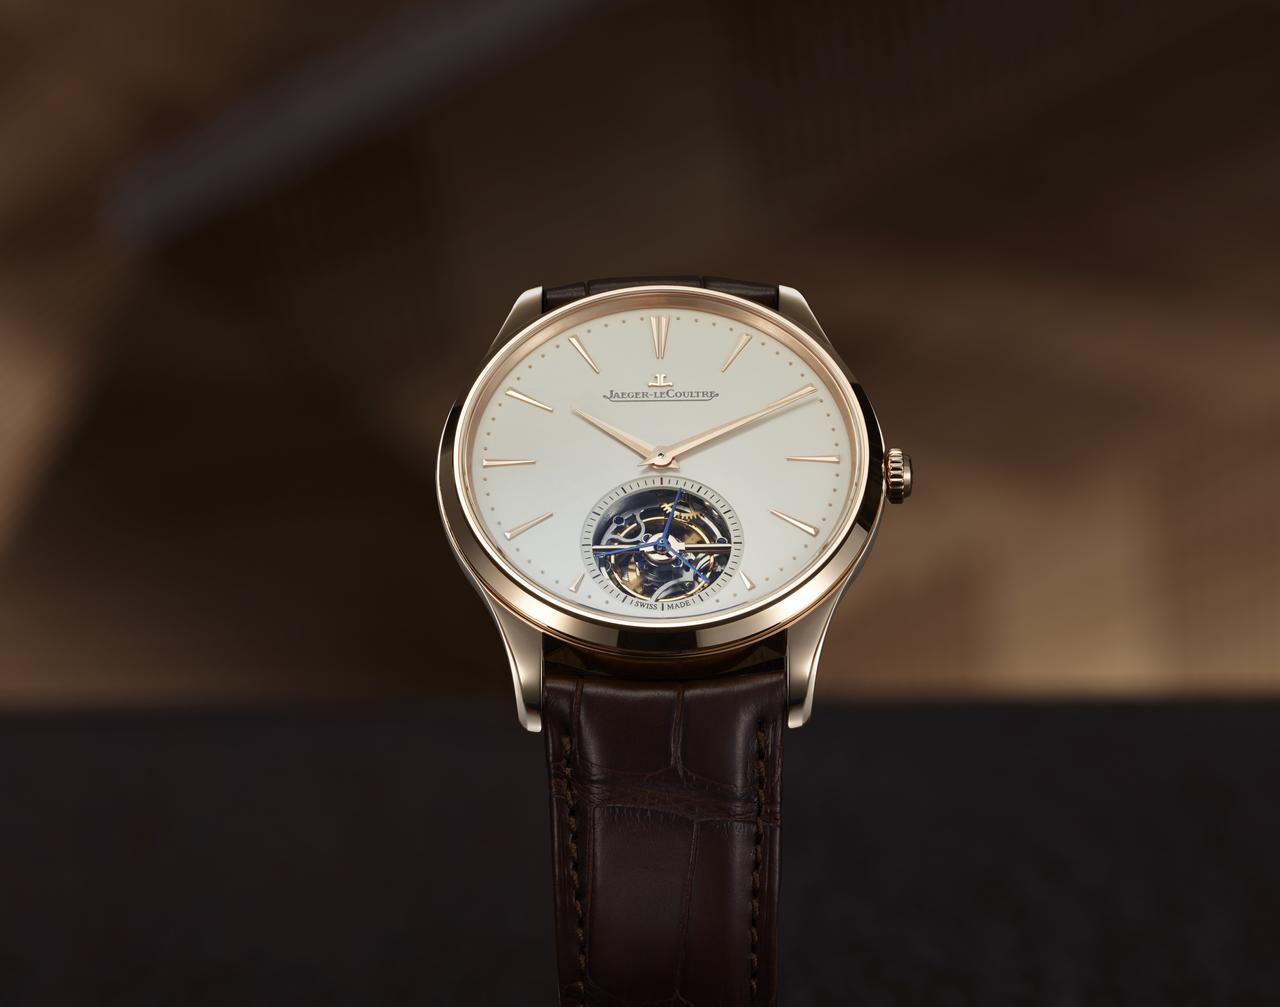 Jaeger-LeCoultre Master Ultra Thin Tourbillon, pink gold